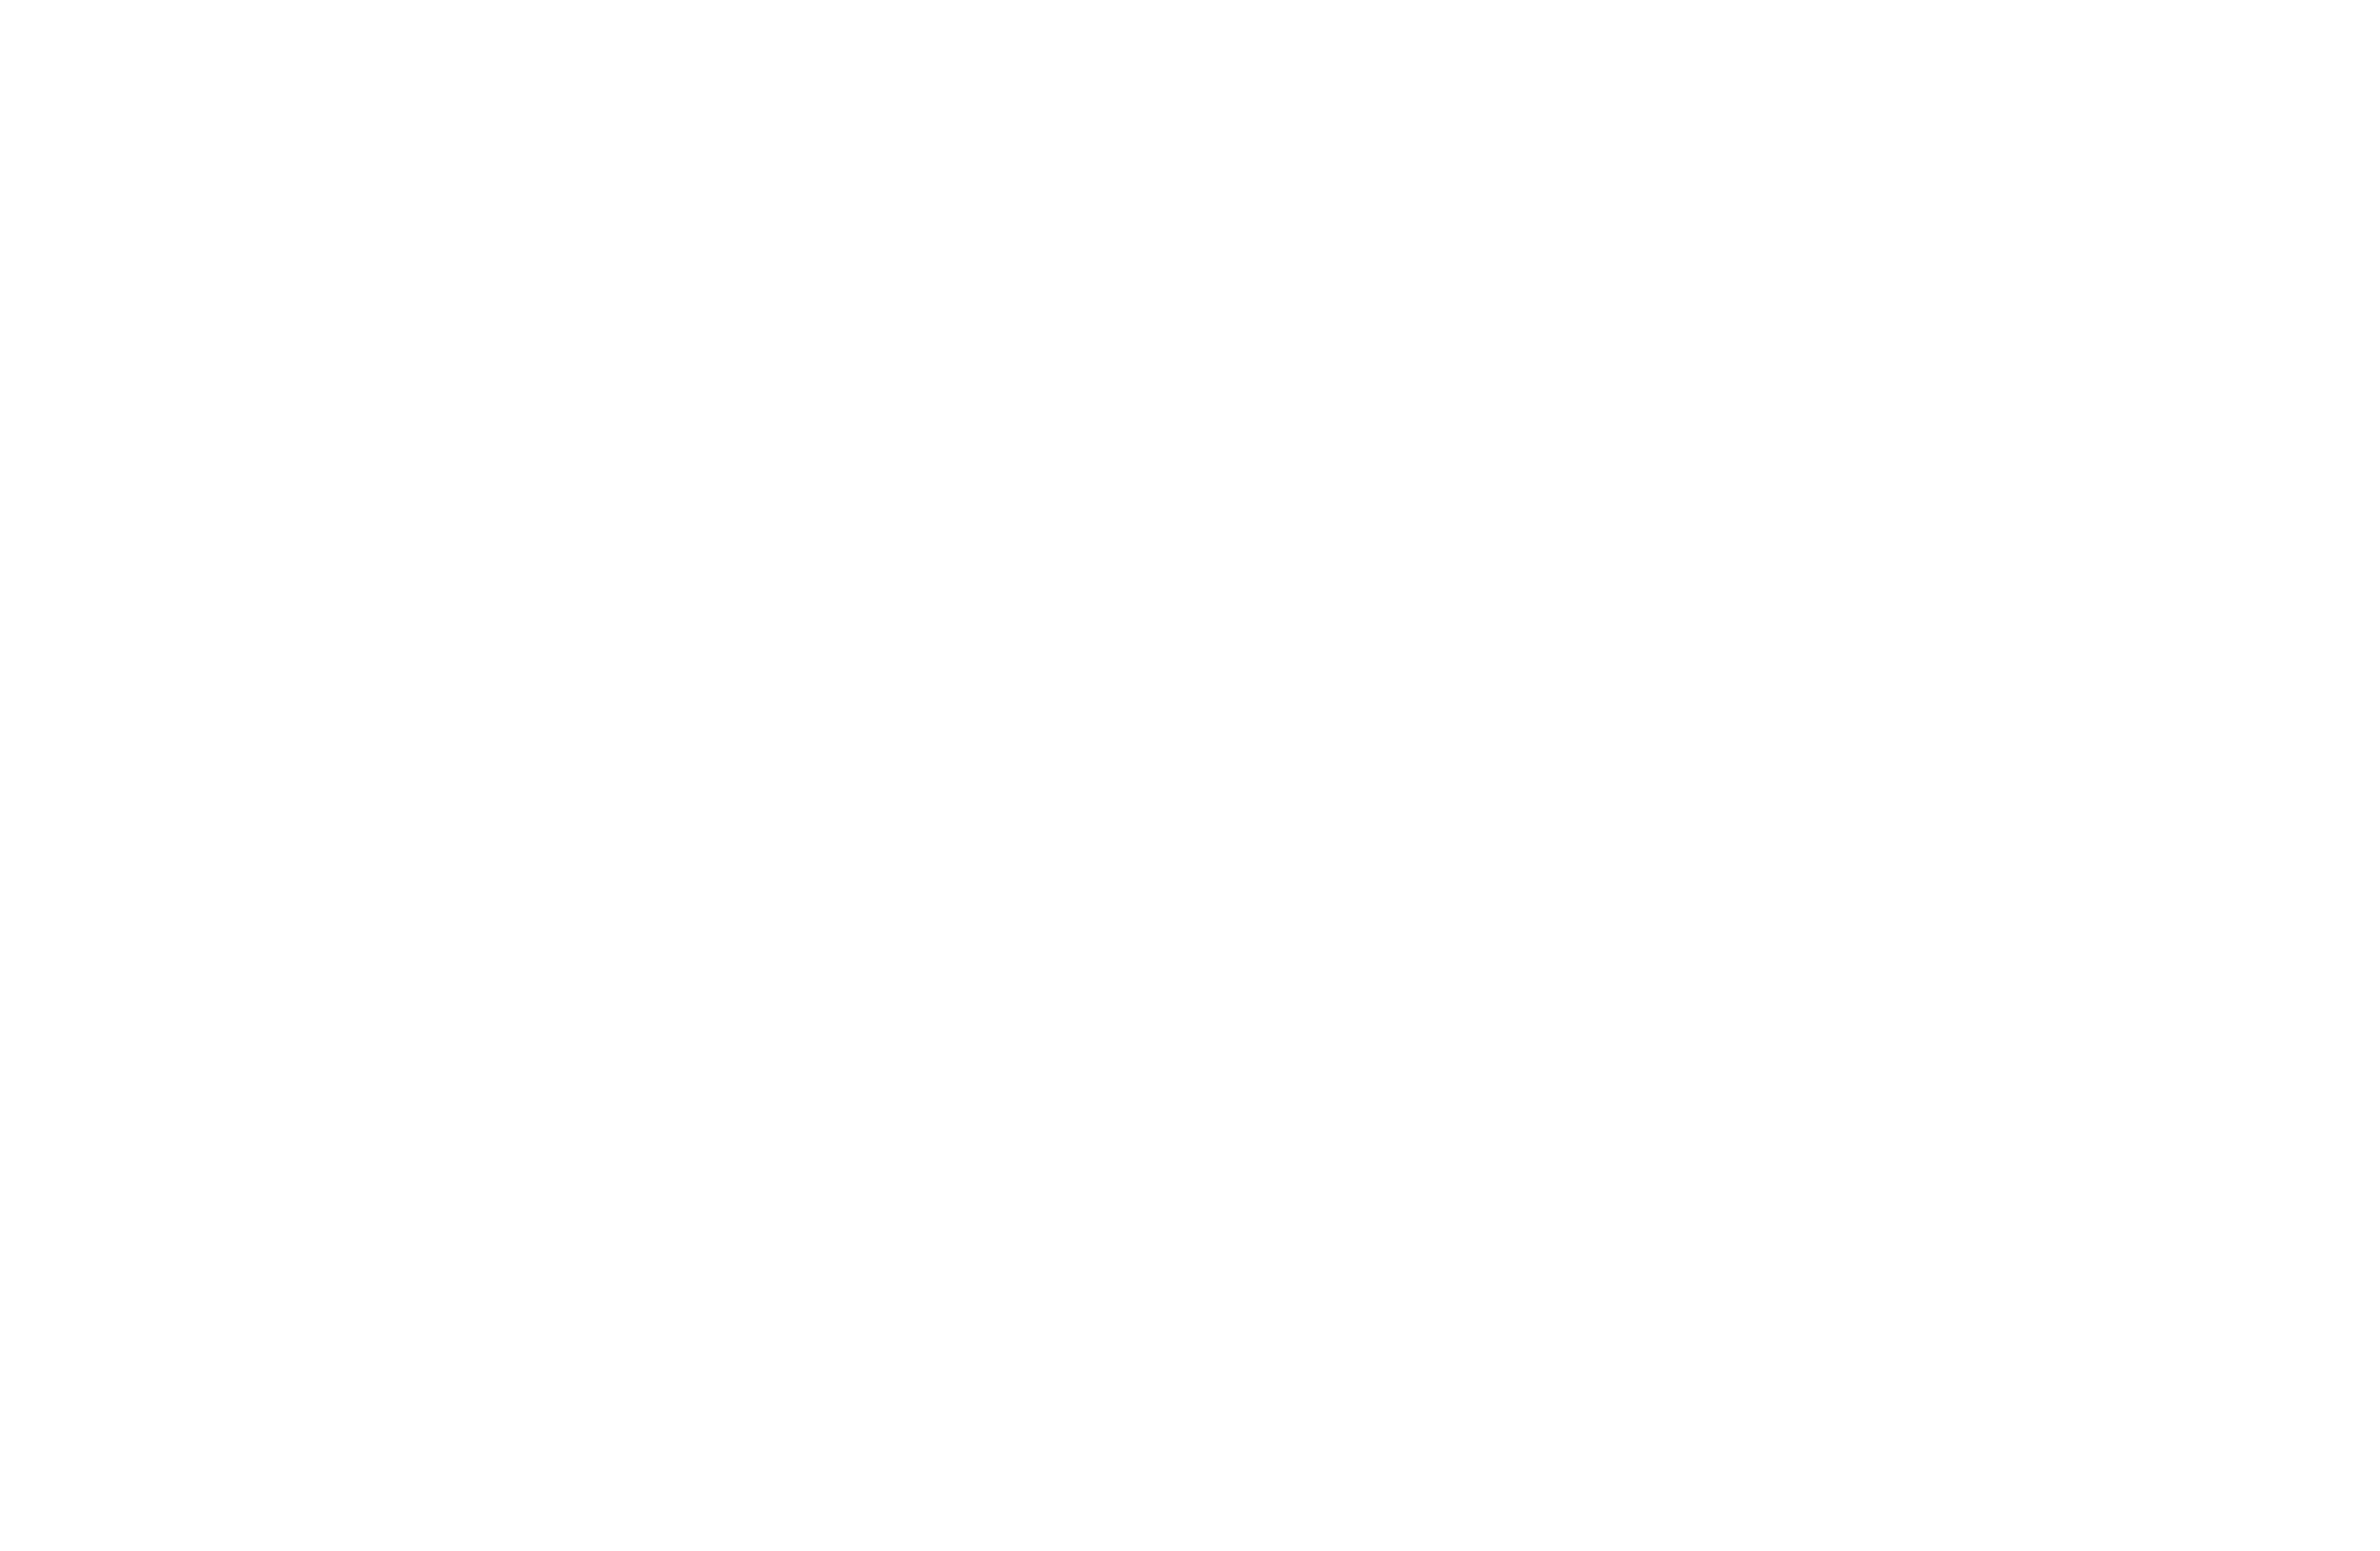 RW Real Estate logo